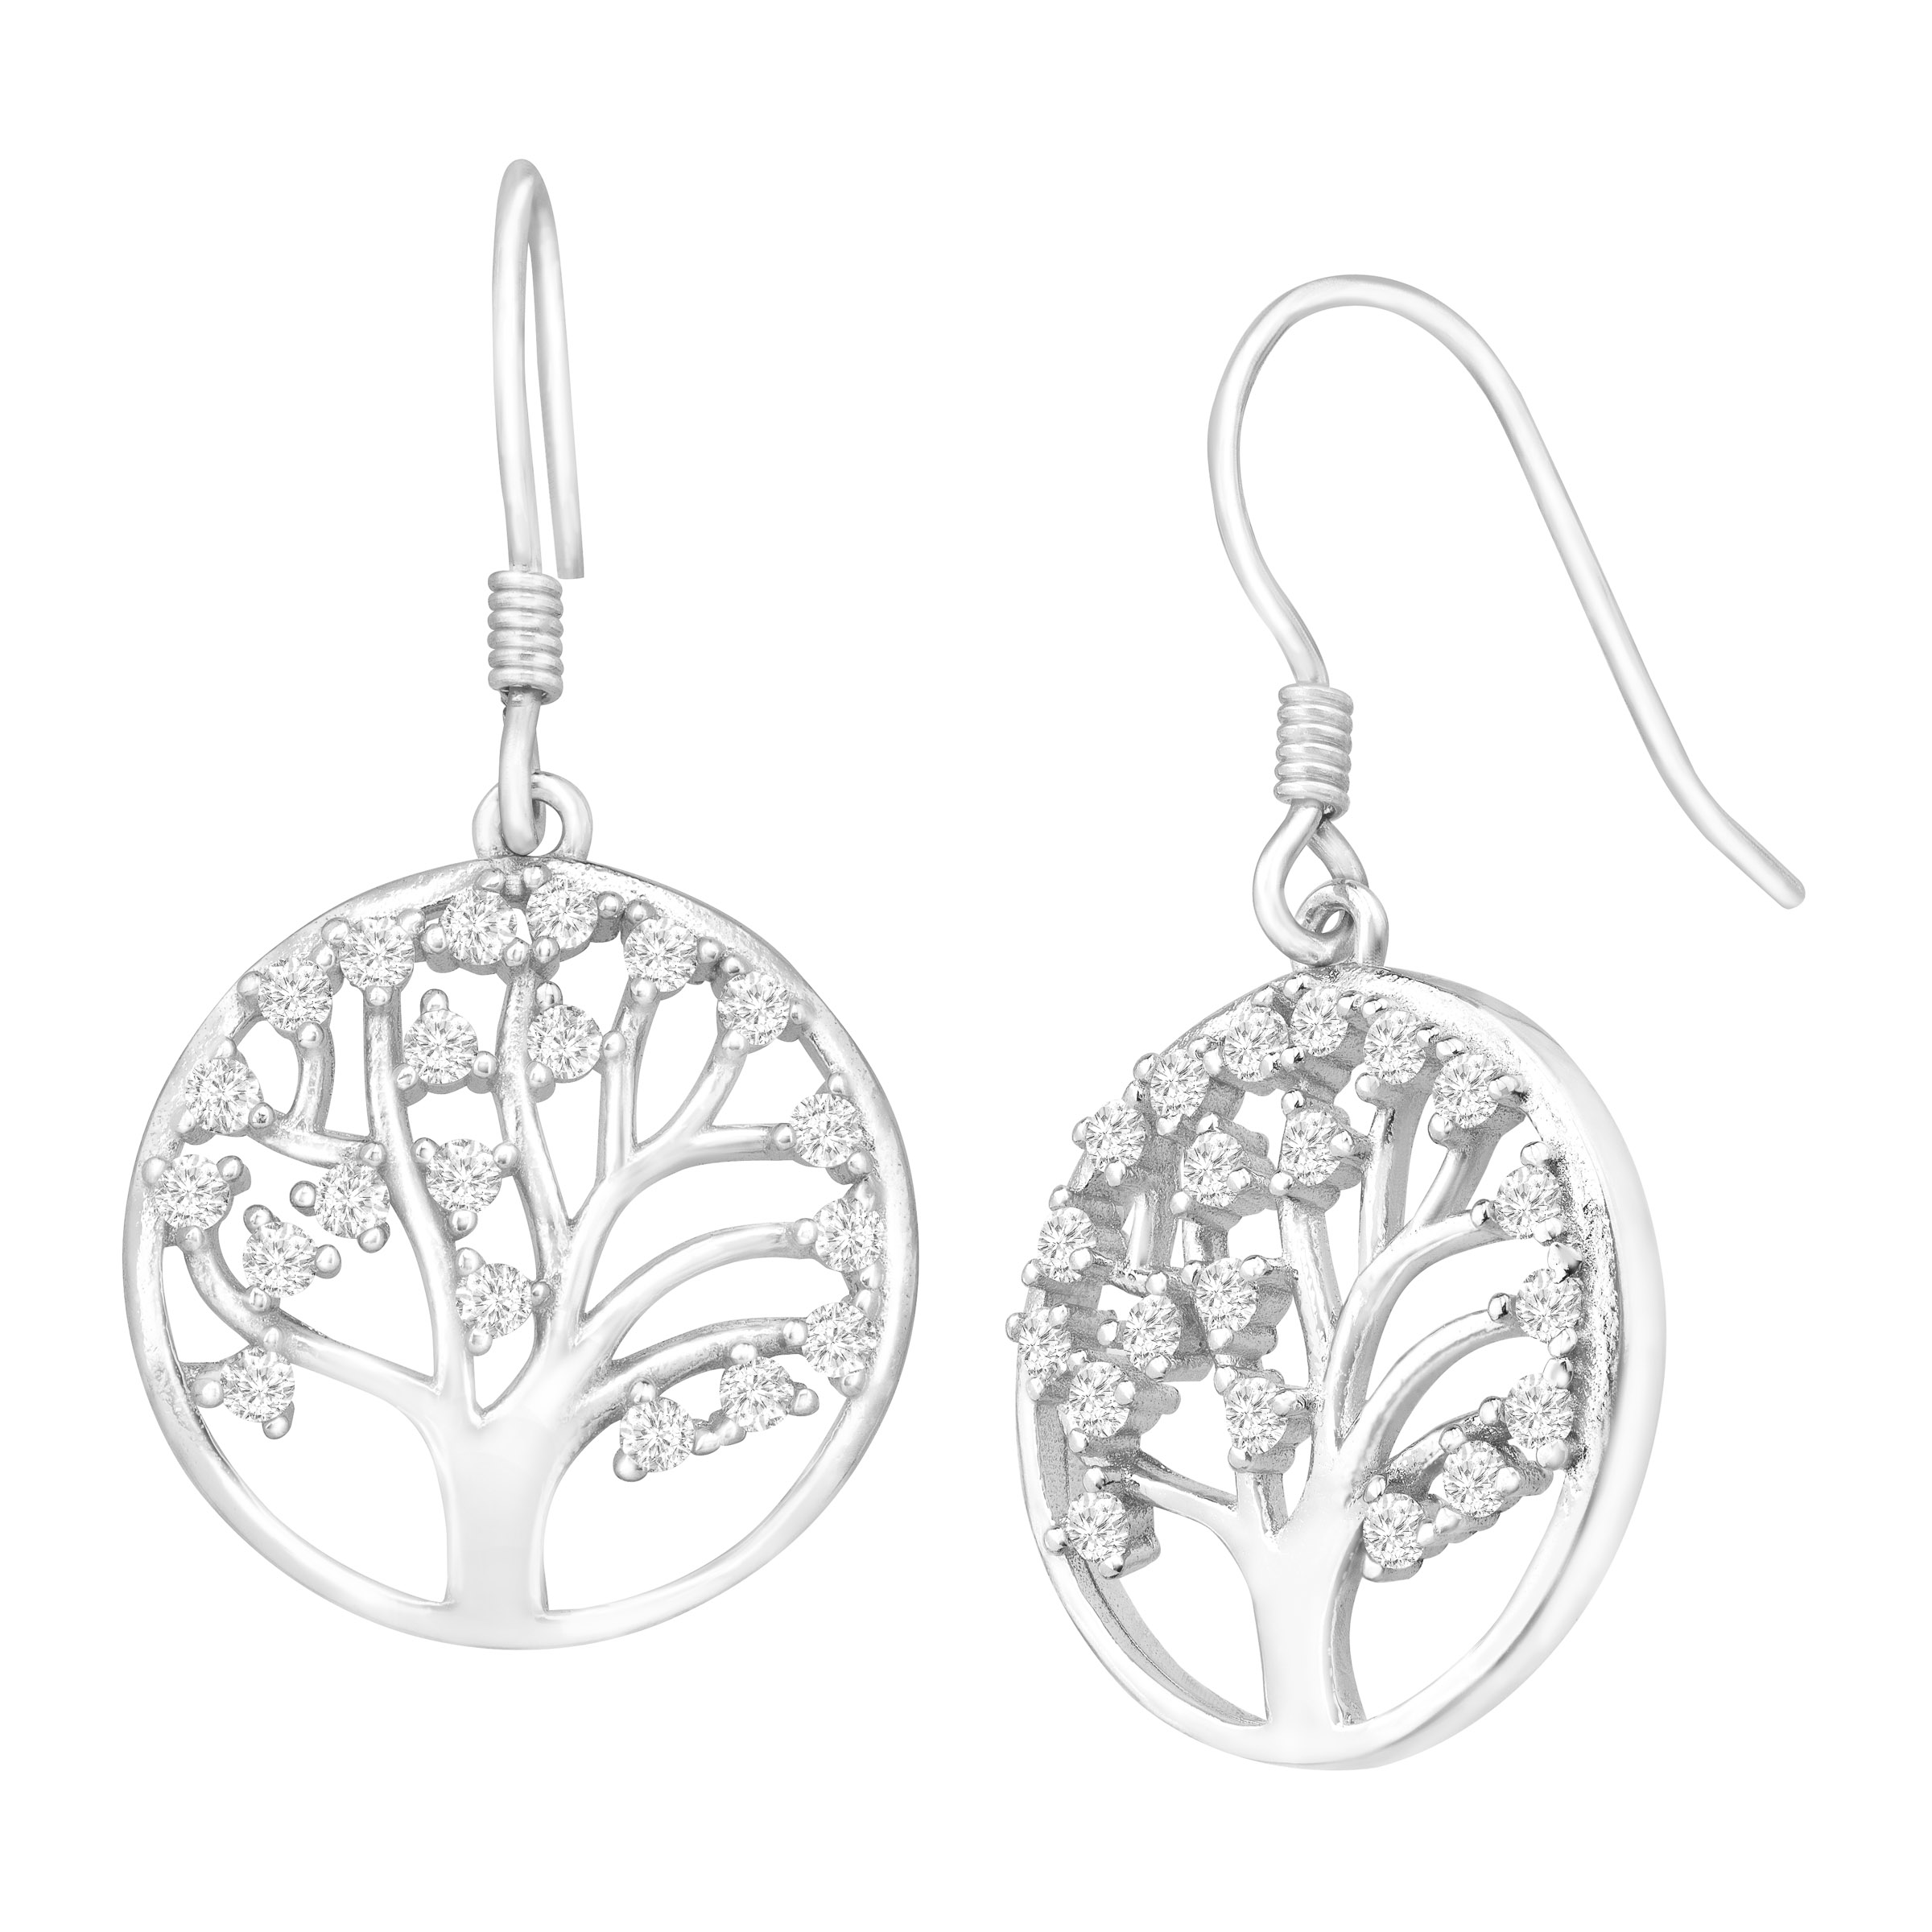 Tree of Love Drop Earrings with Cubic Zirconia in Sterling Silver